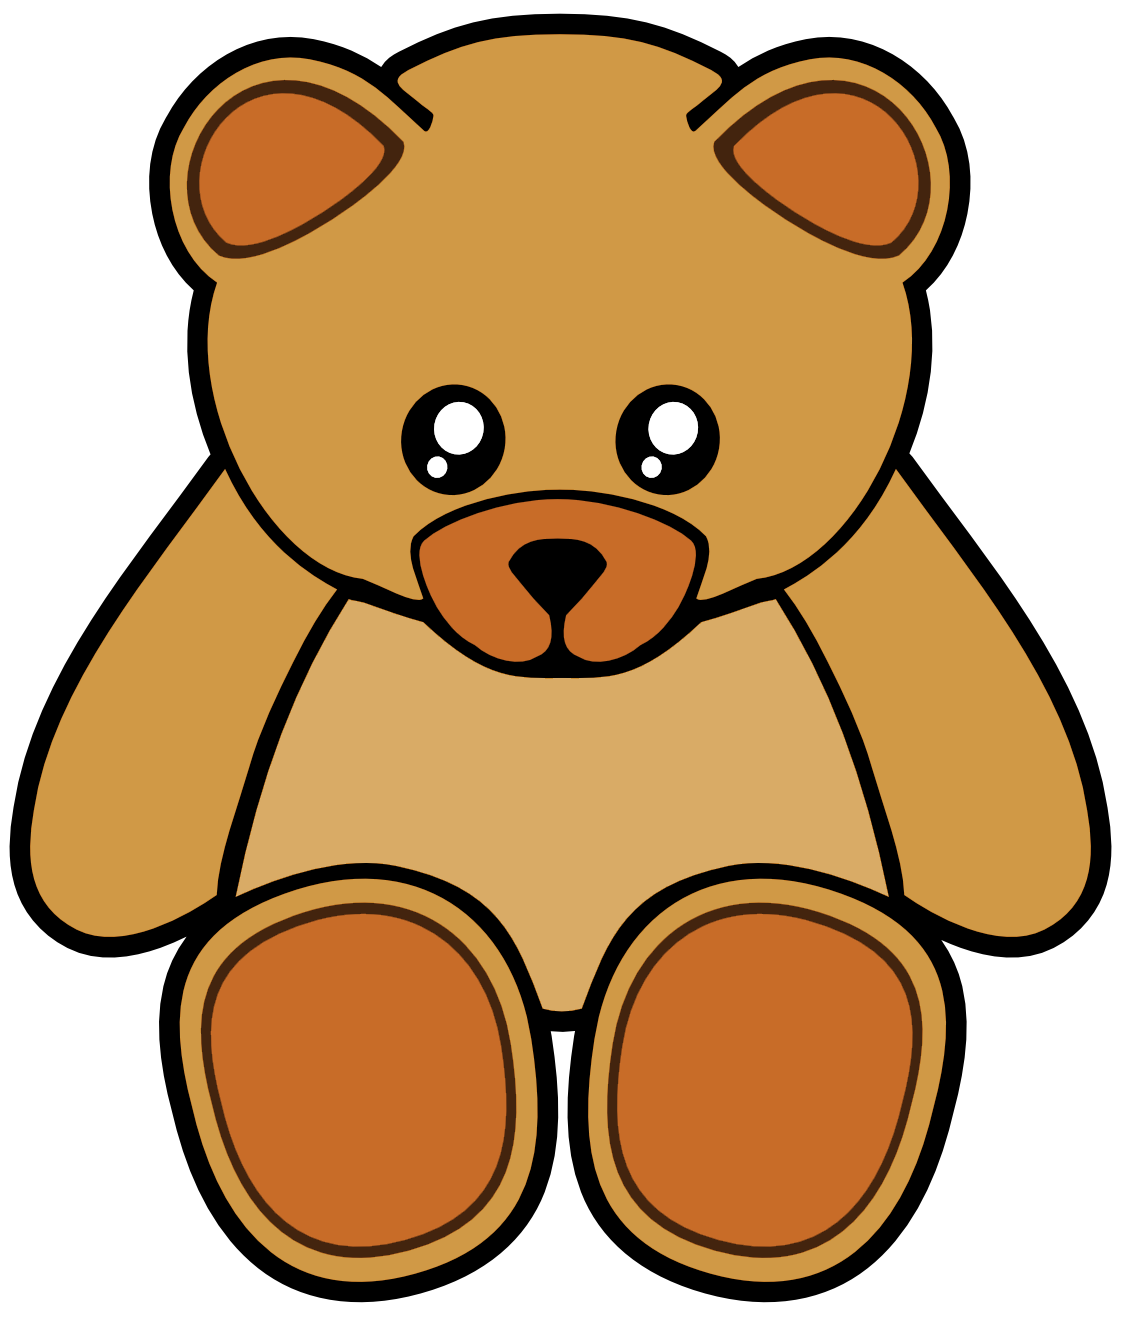 Teddy Bear Clipart Free Free Download Best Teddy Bear Clipart Free